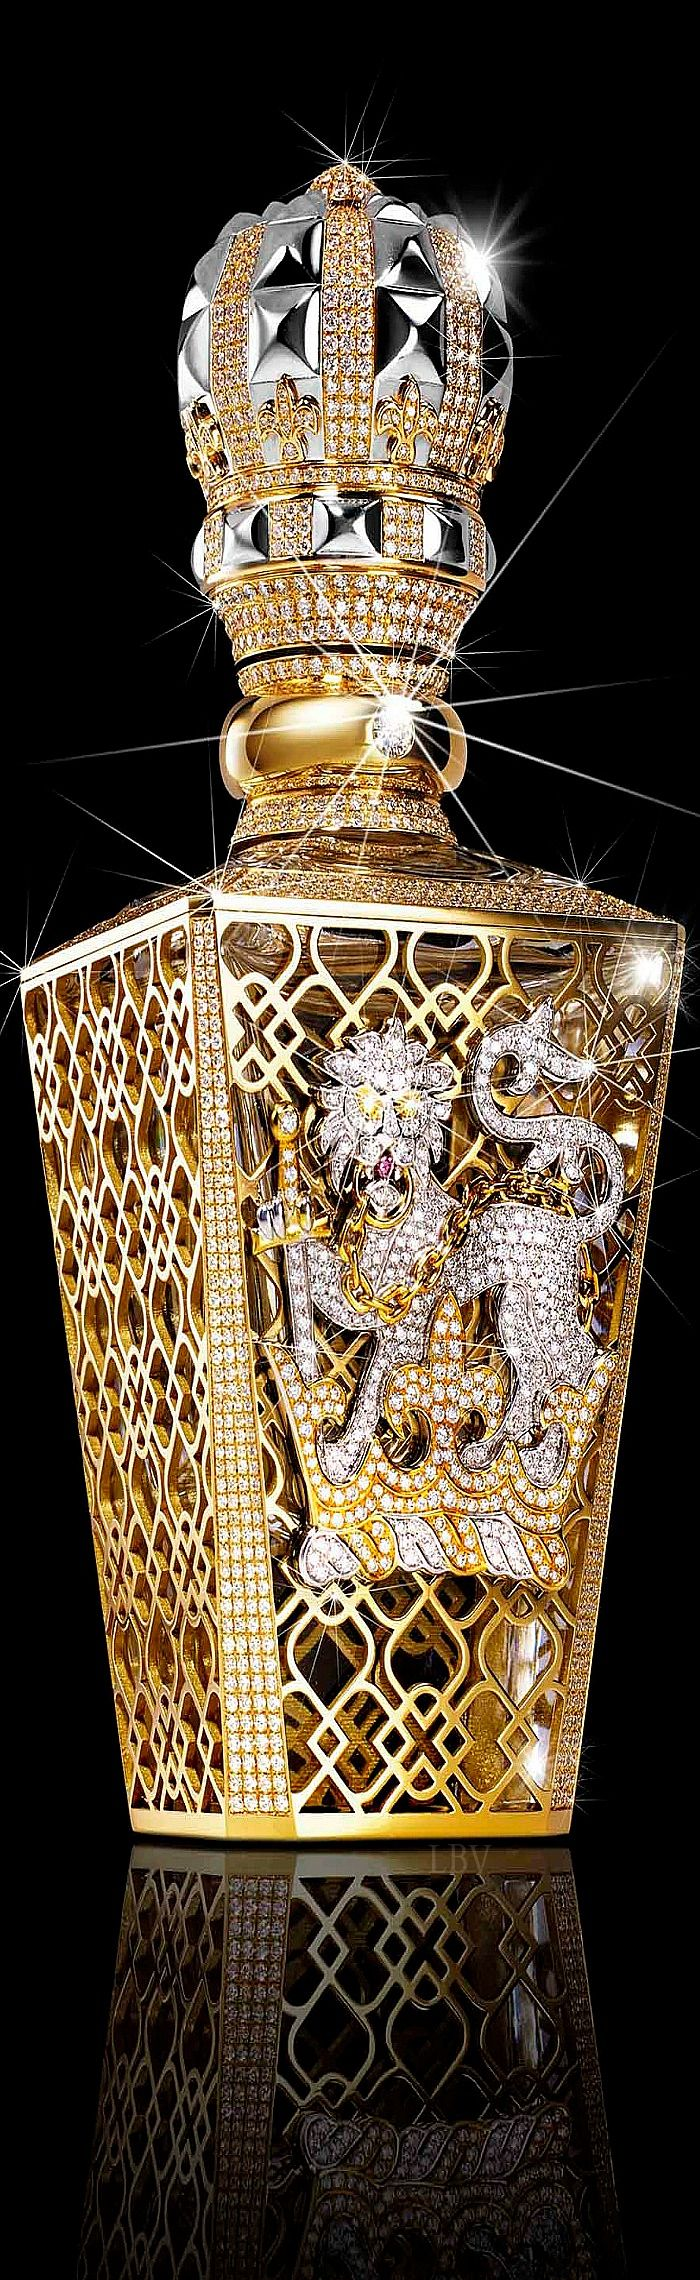 The World's Most Expensive Perfume Clive Christian No 1 Passant Guardant. 24 Gold Carat and starts at $250,000.